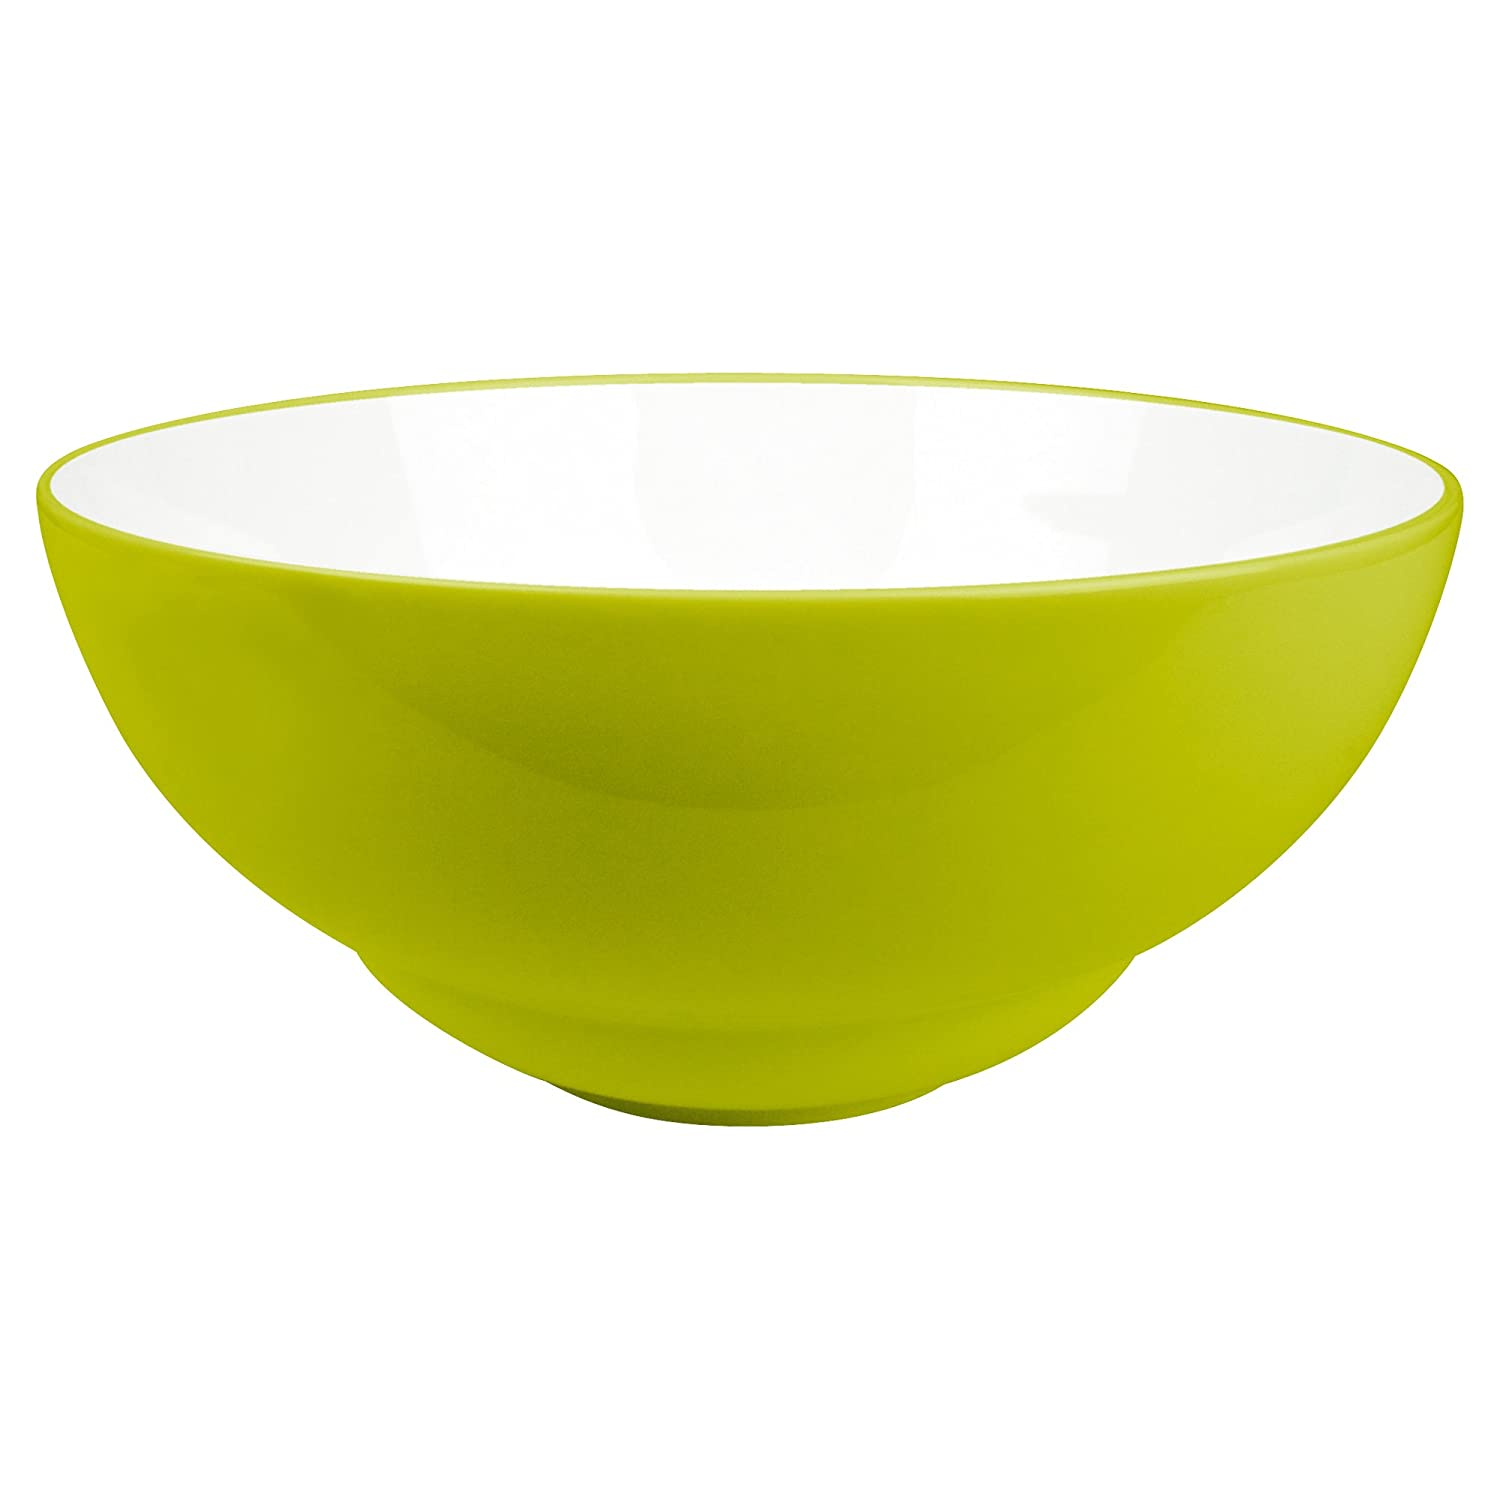 Waechtersbach Uno Soup/Cereal Bowls, Mint, Set of 4 44S4CL0025